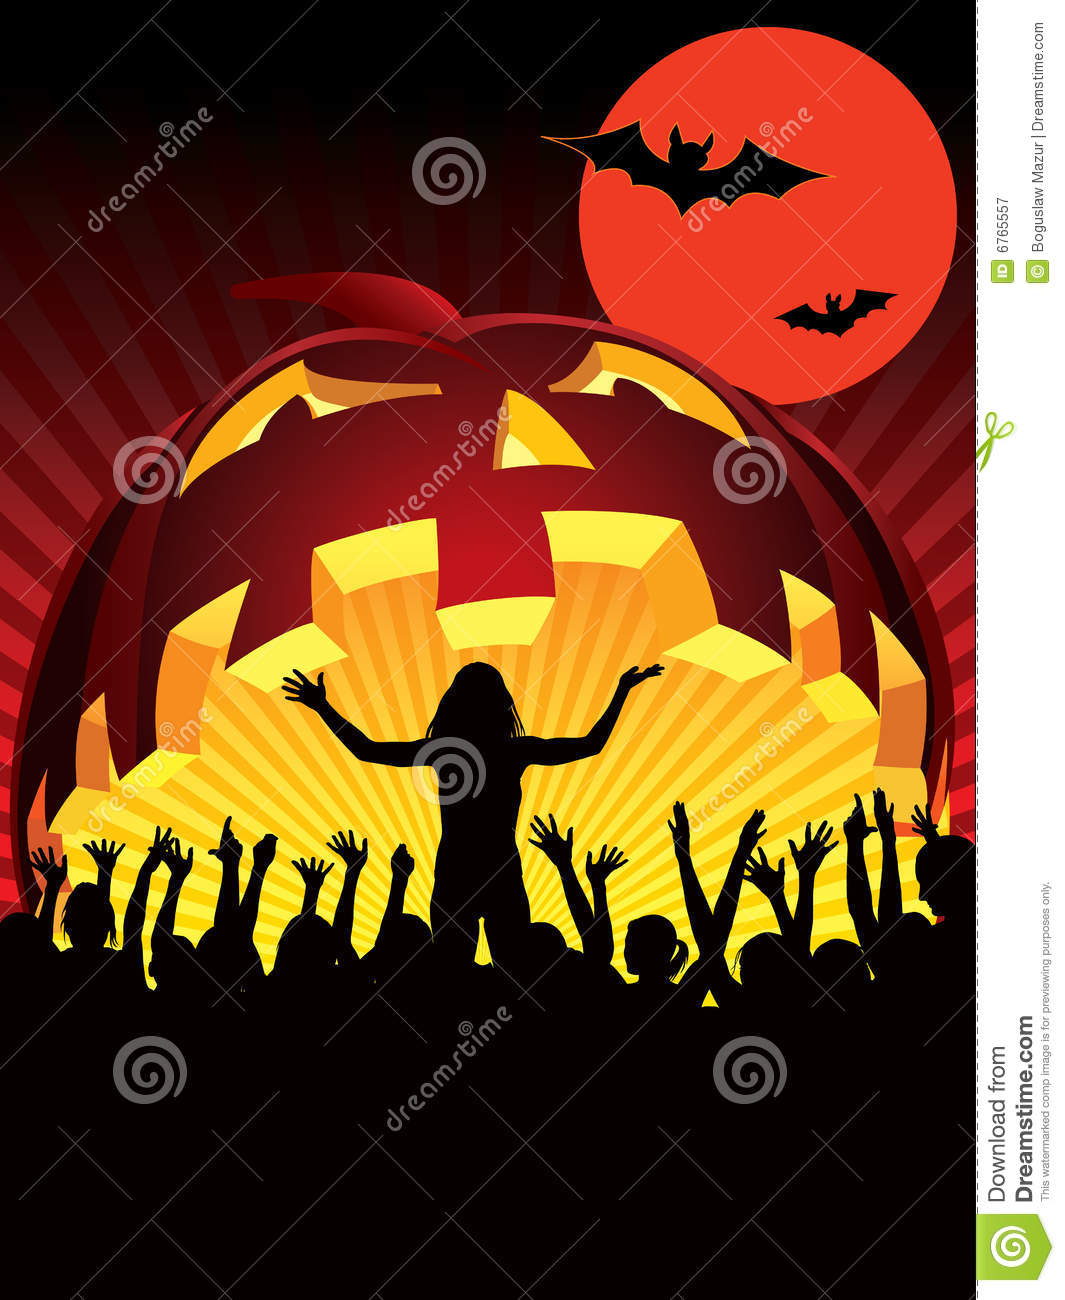 Halloween Party Royalty Free Stock Photography - Image: 6765557